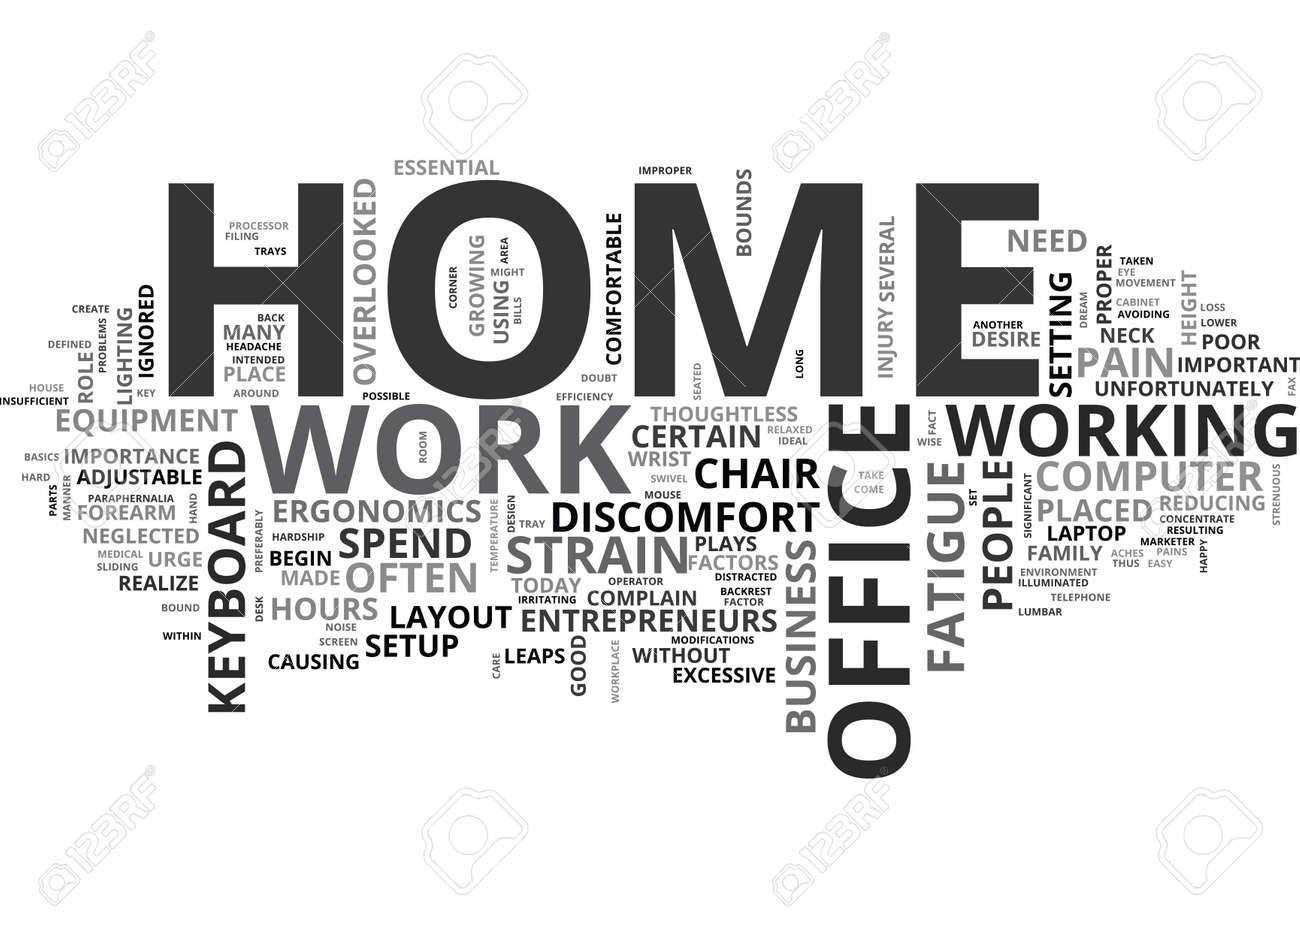 WHY A GOOD HOME OFFICE SETUP IS ESSENTIAL FOR WORK FROM HOME ...